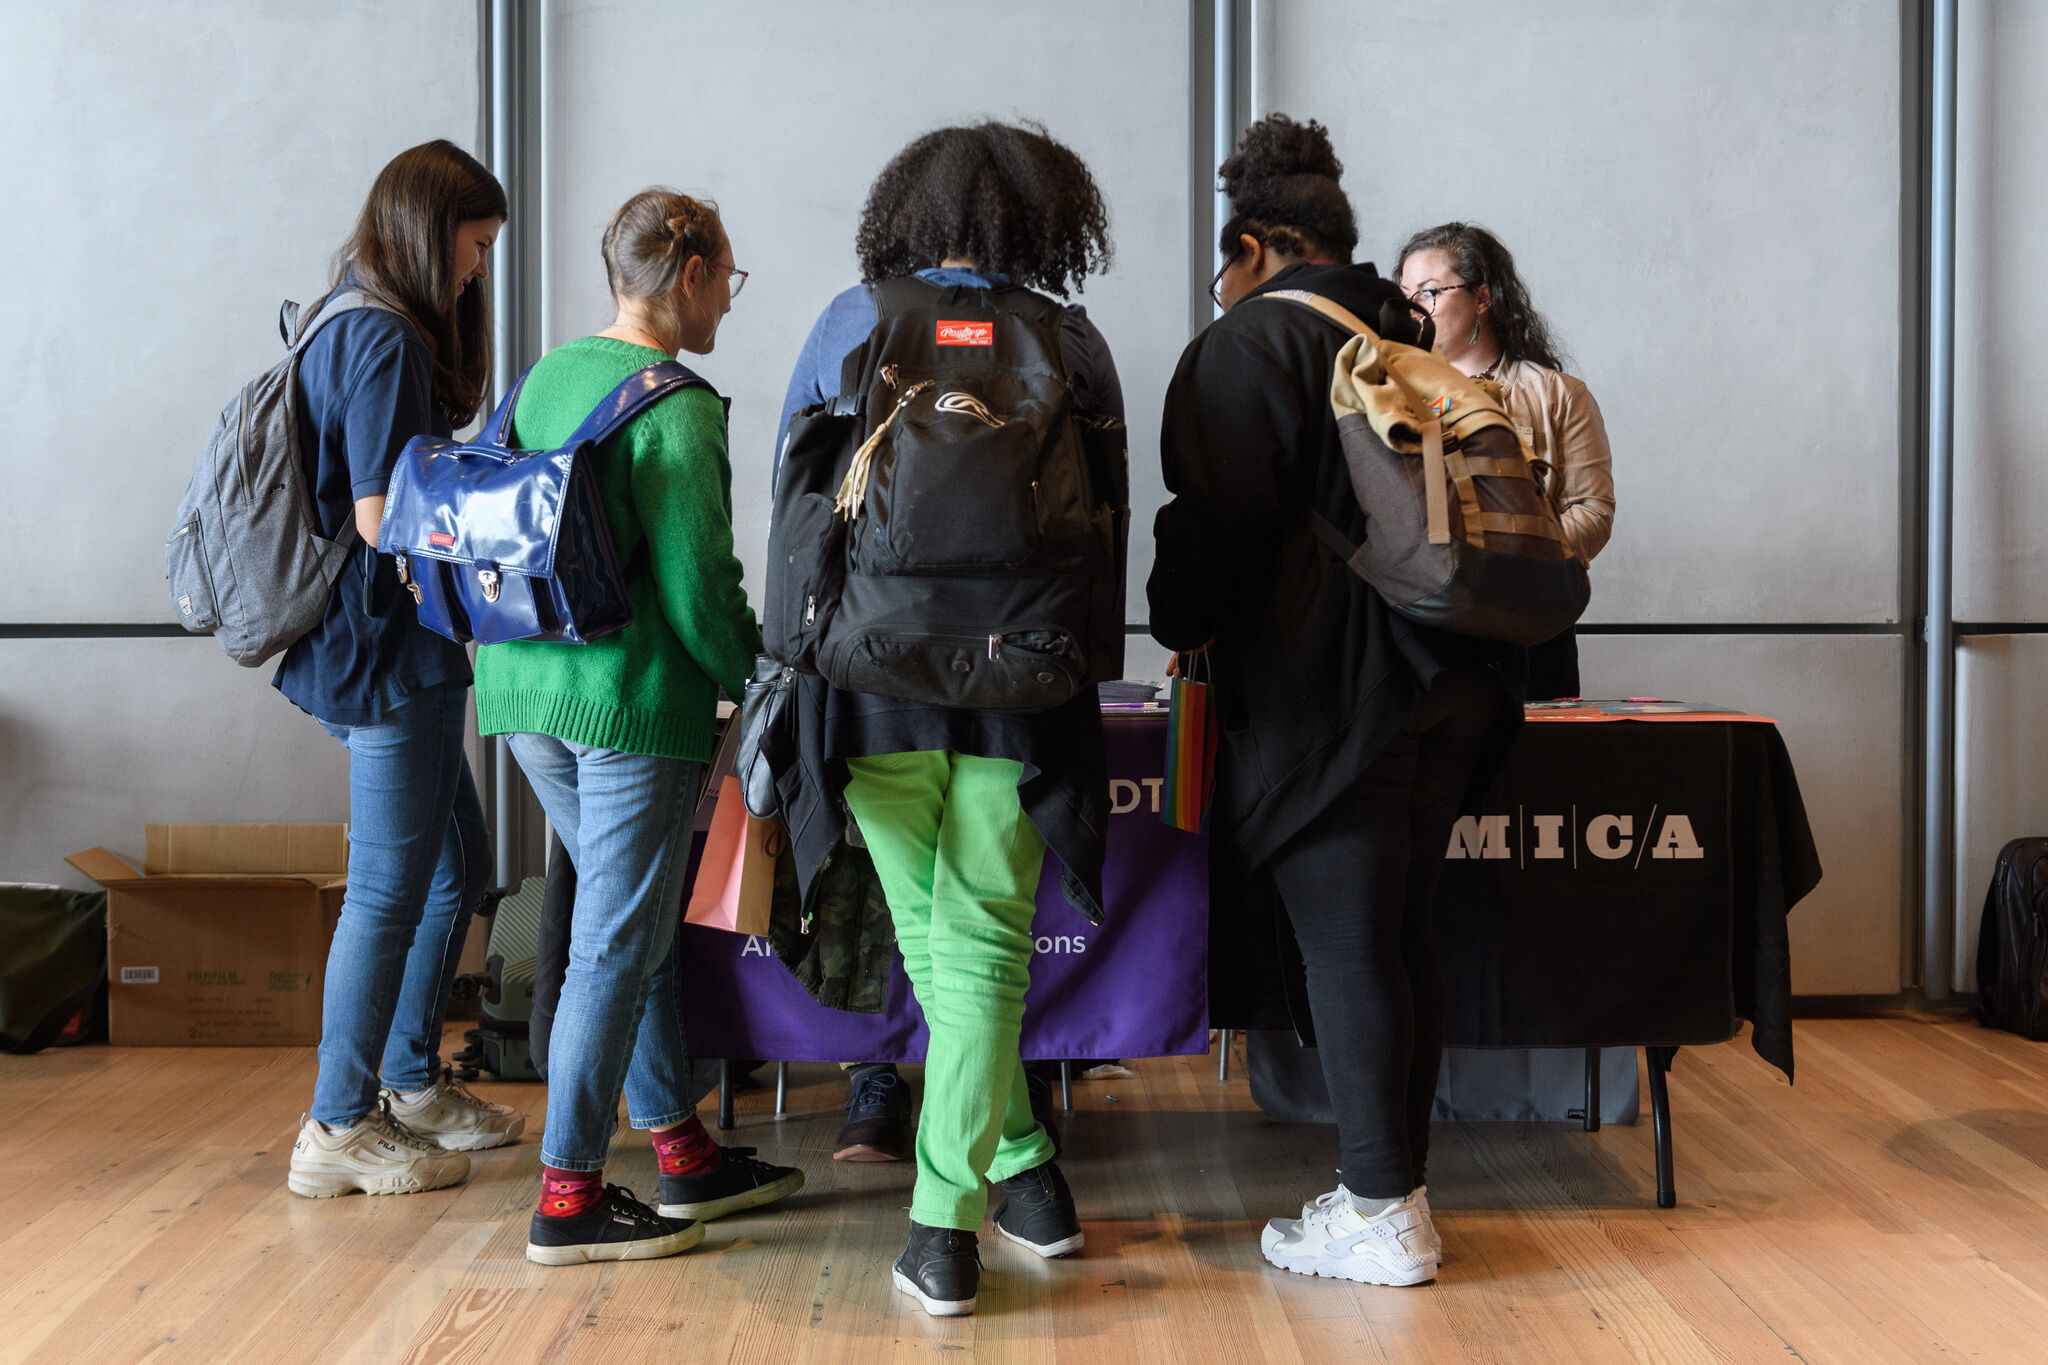 A group of teenage people with backpacks on gather in front of information tables at the Whitney.